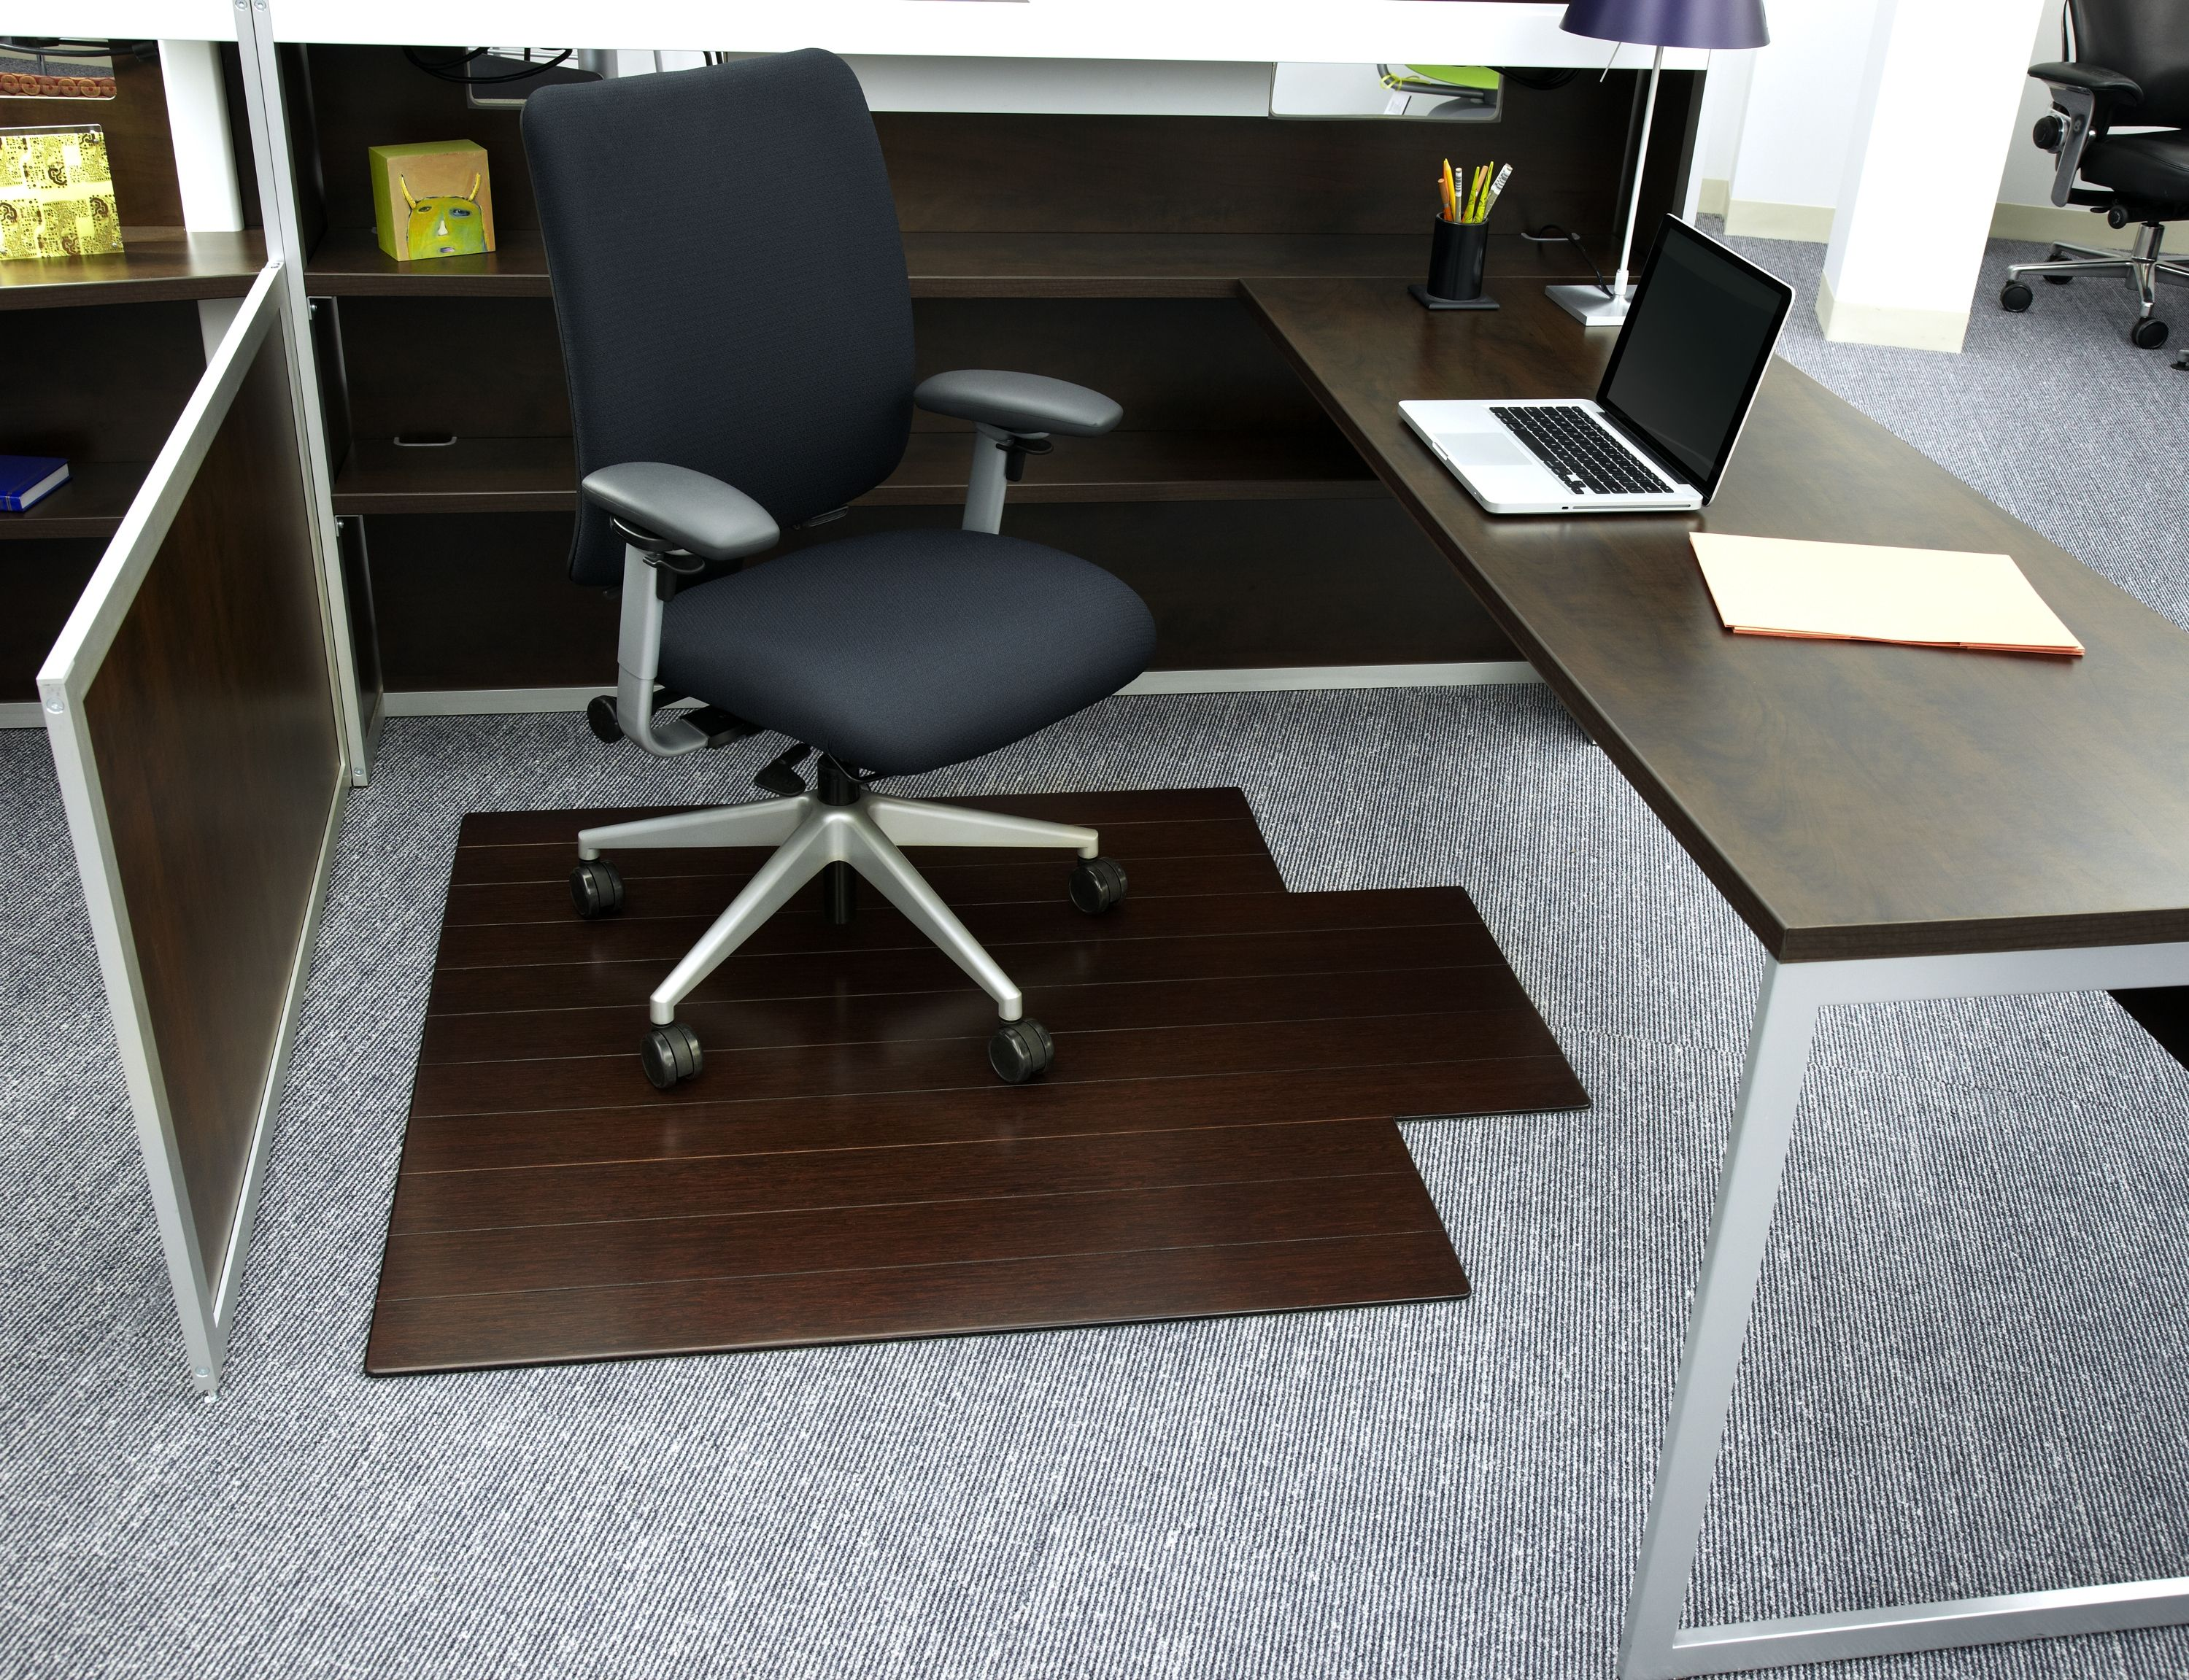 wood colored carpet small chairs hard best floor ergonomic clear floors mats chair office full of decoration heavy drjamesghoodblog under plastic for put rubber to workstation desk plexiglass pads mat size protector